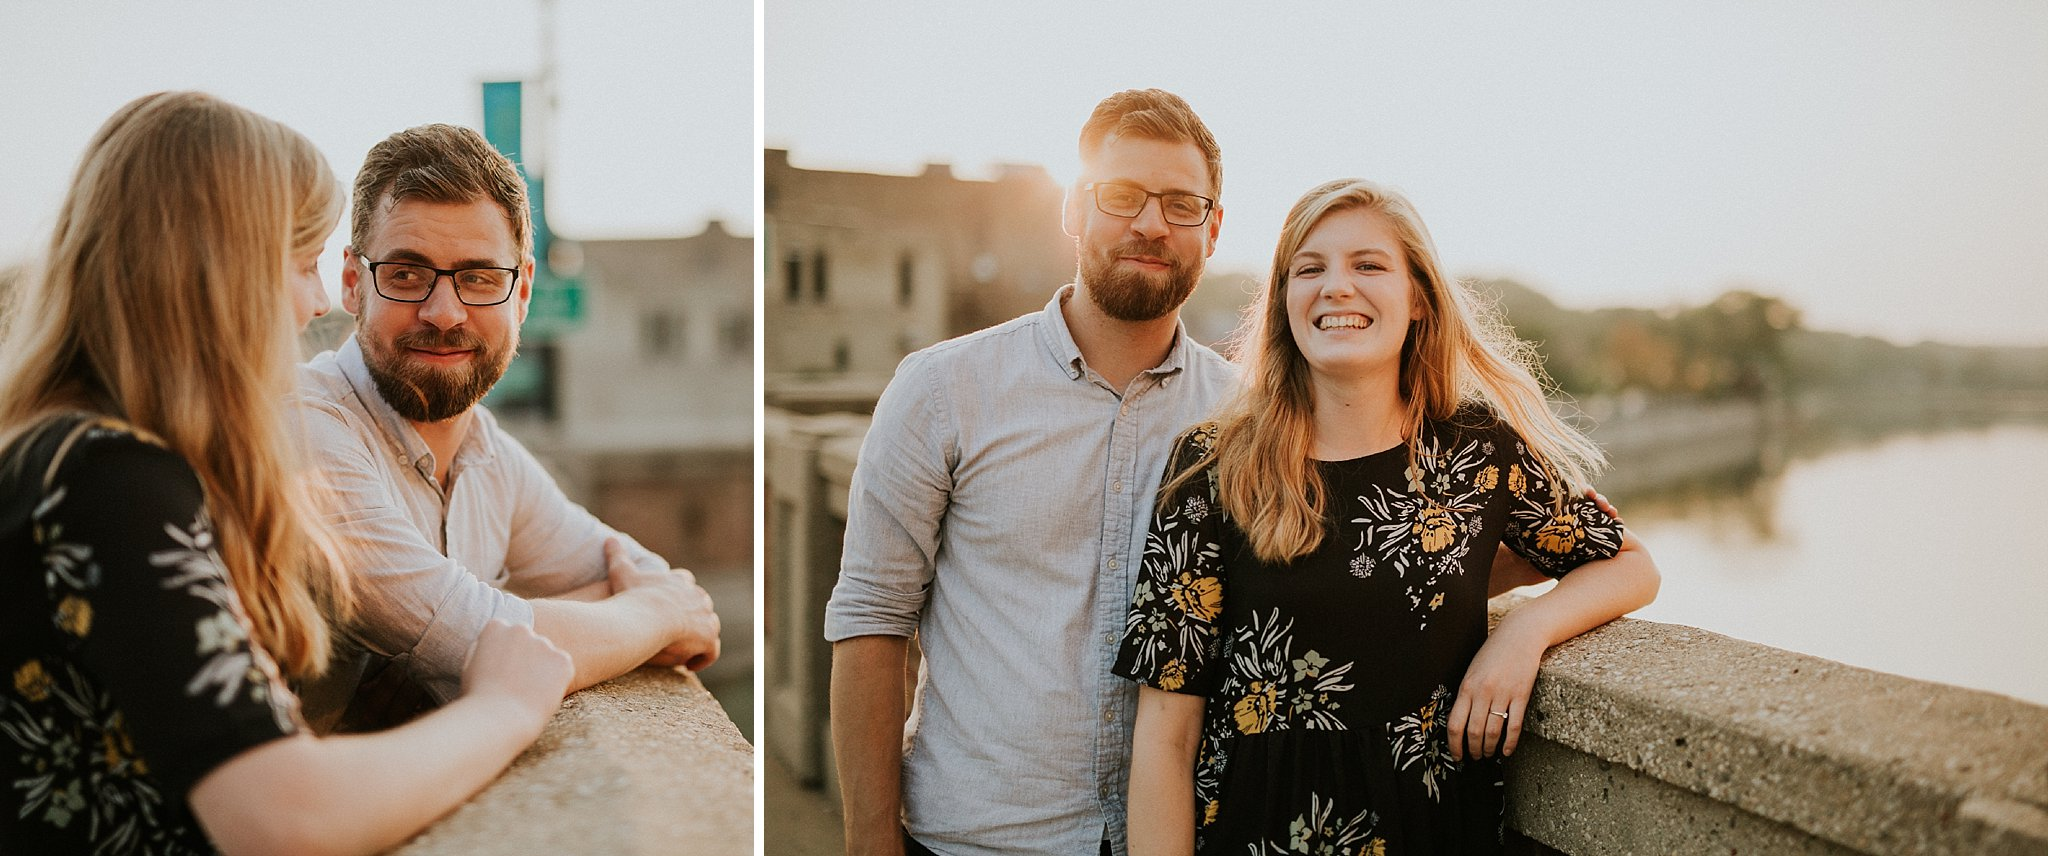 peter-katelyn_chicago-engagement-session_west-dundee-raceway-woods_0015.jpg